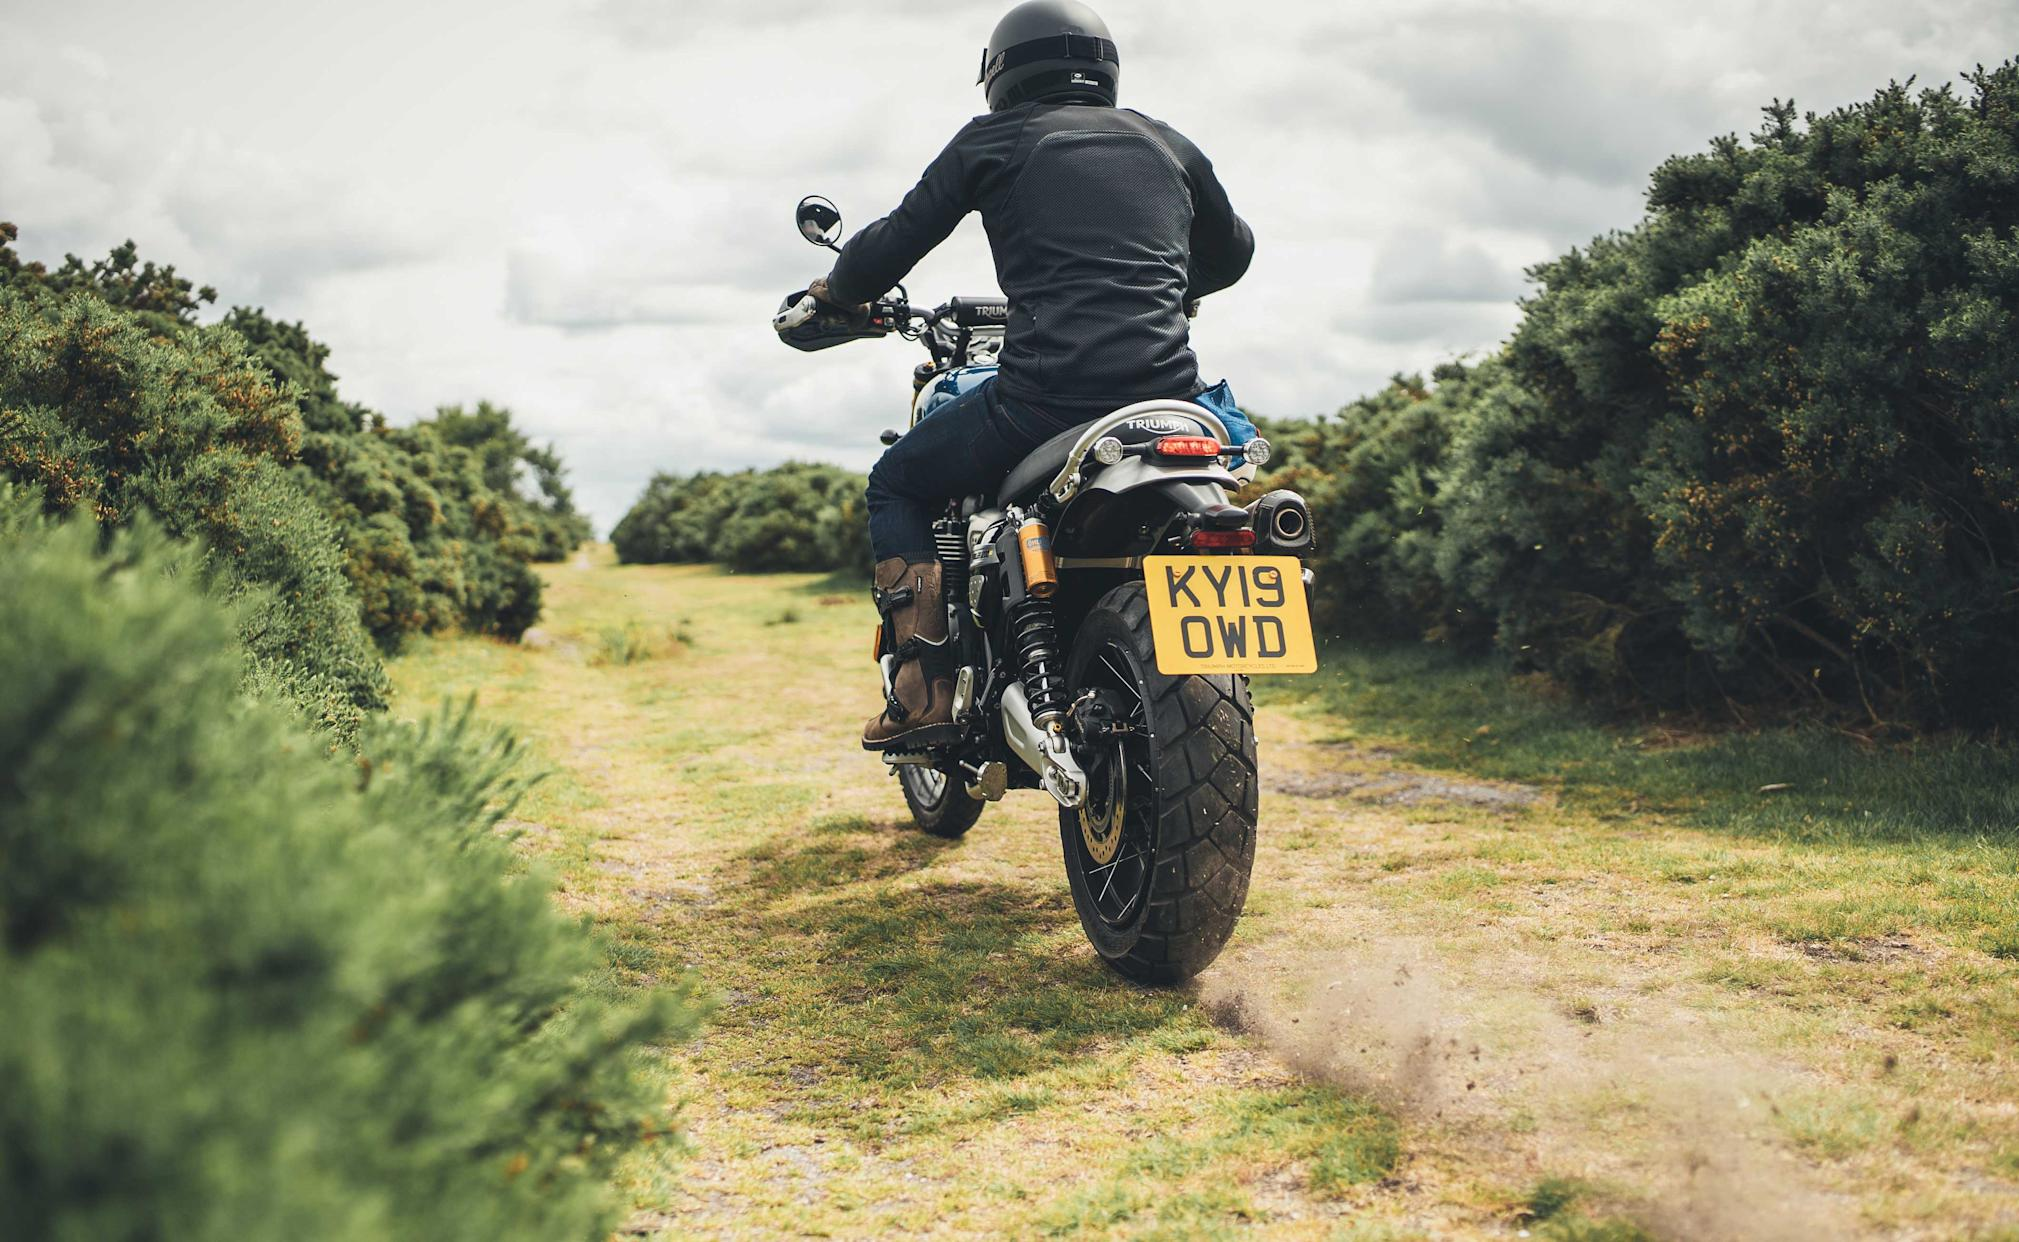 An advanced traction control system helps the bike off-road